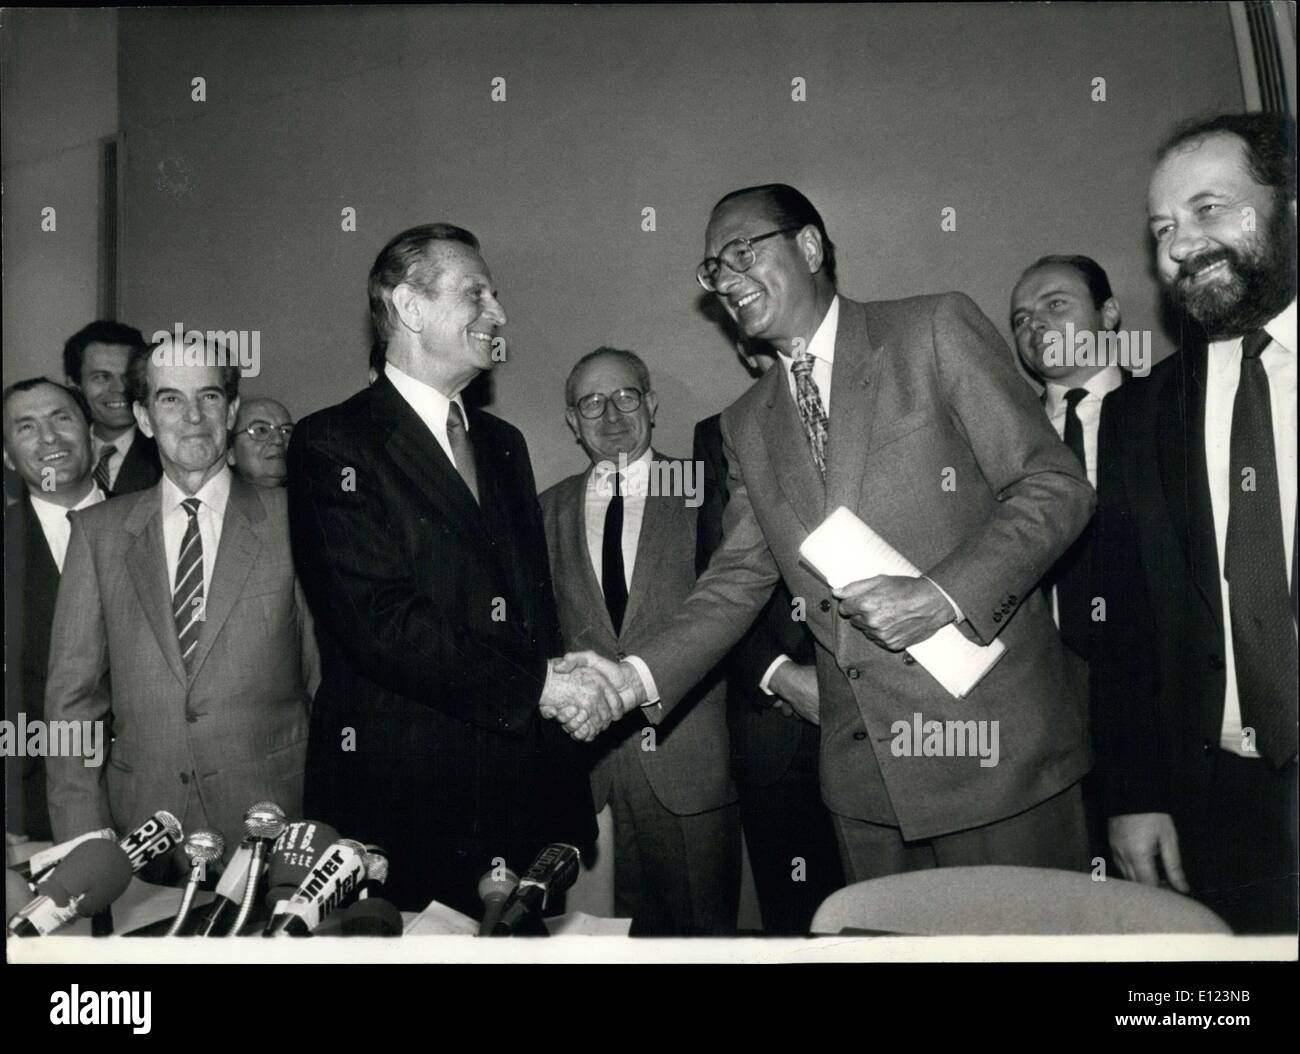 Apr. 10, 1985 - Chirac is President of the Rally for the Republic (RPR) and Lecanuet is President of the Union for French Democracy (UDF). They signed an agreement in preparation for the upcoming 1986 elections. - Stock Image